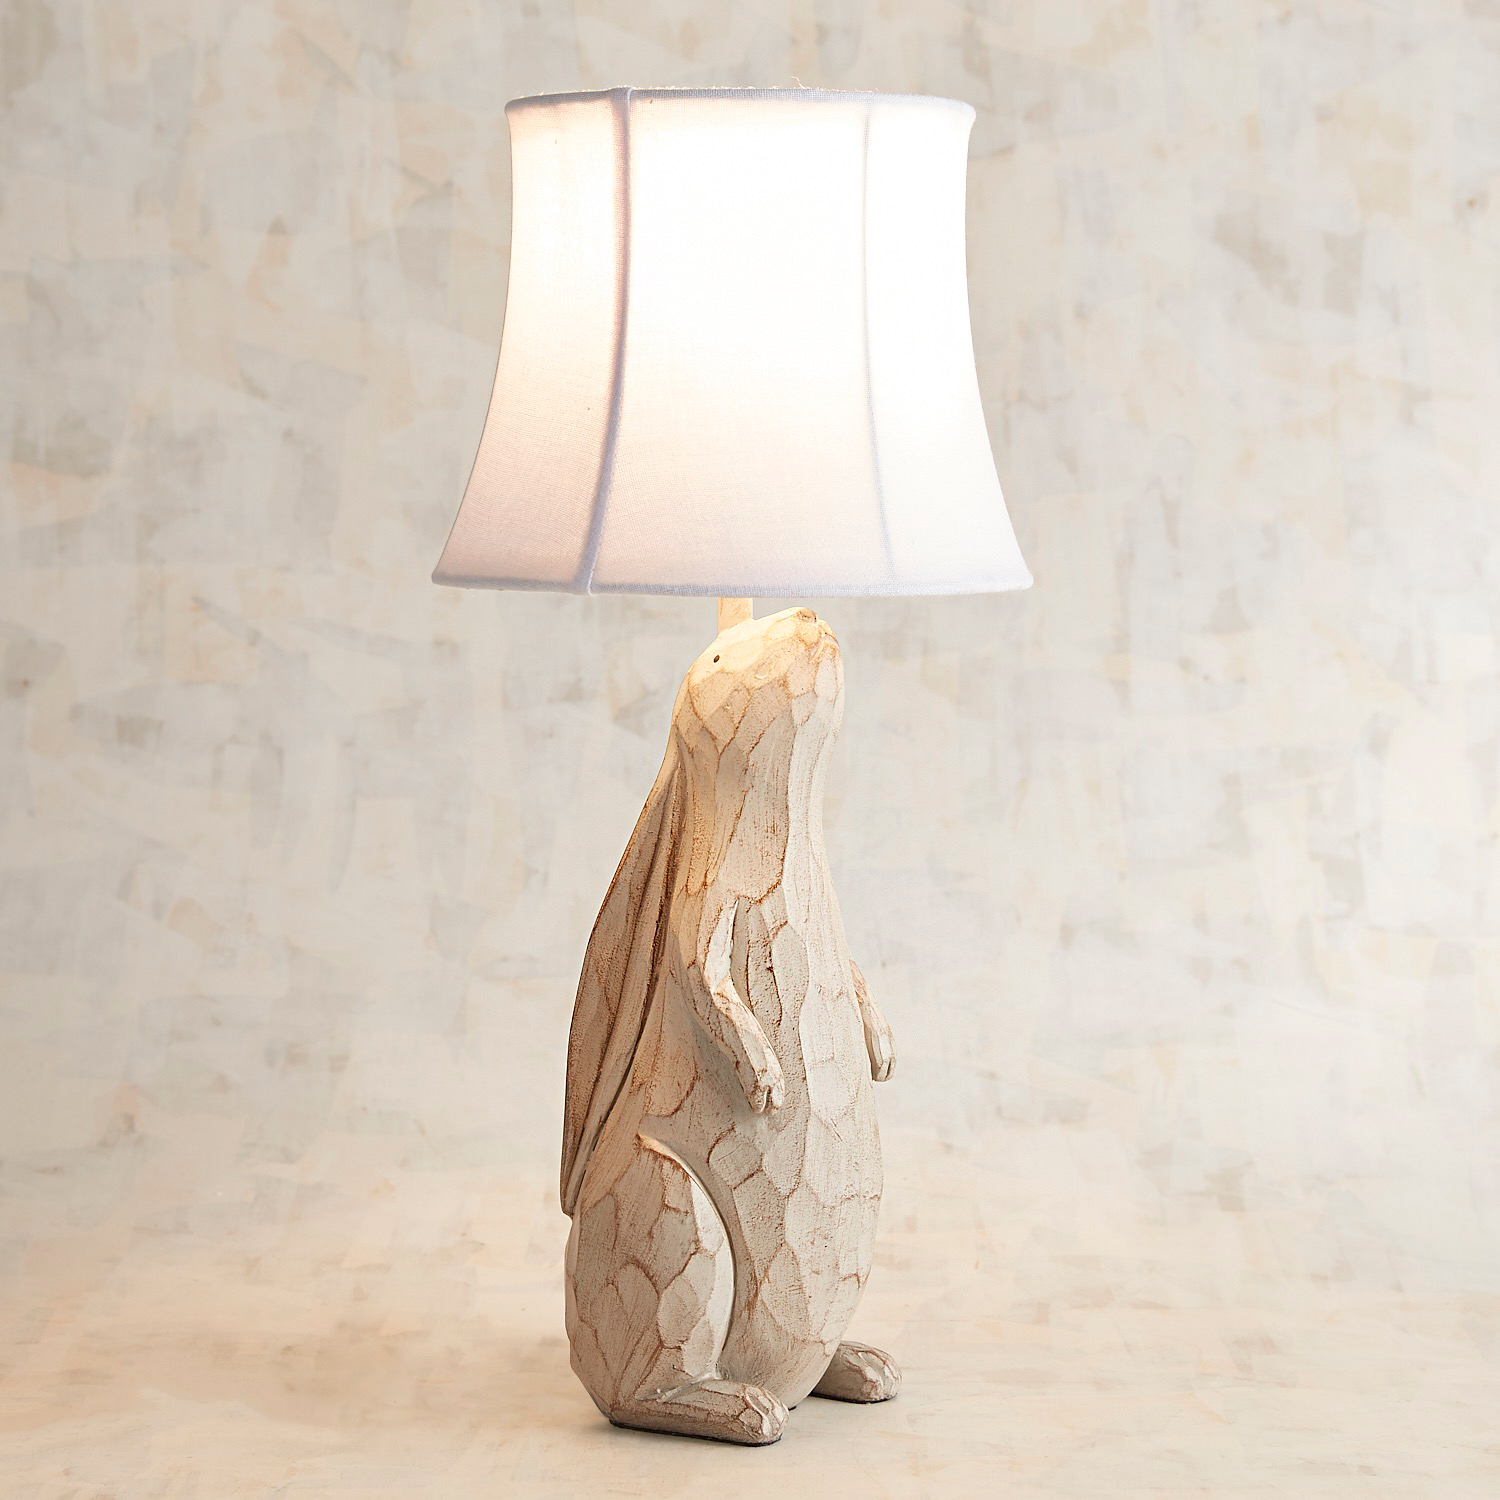 Sofie the Bunny Table Lamp